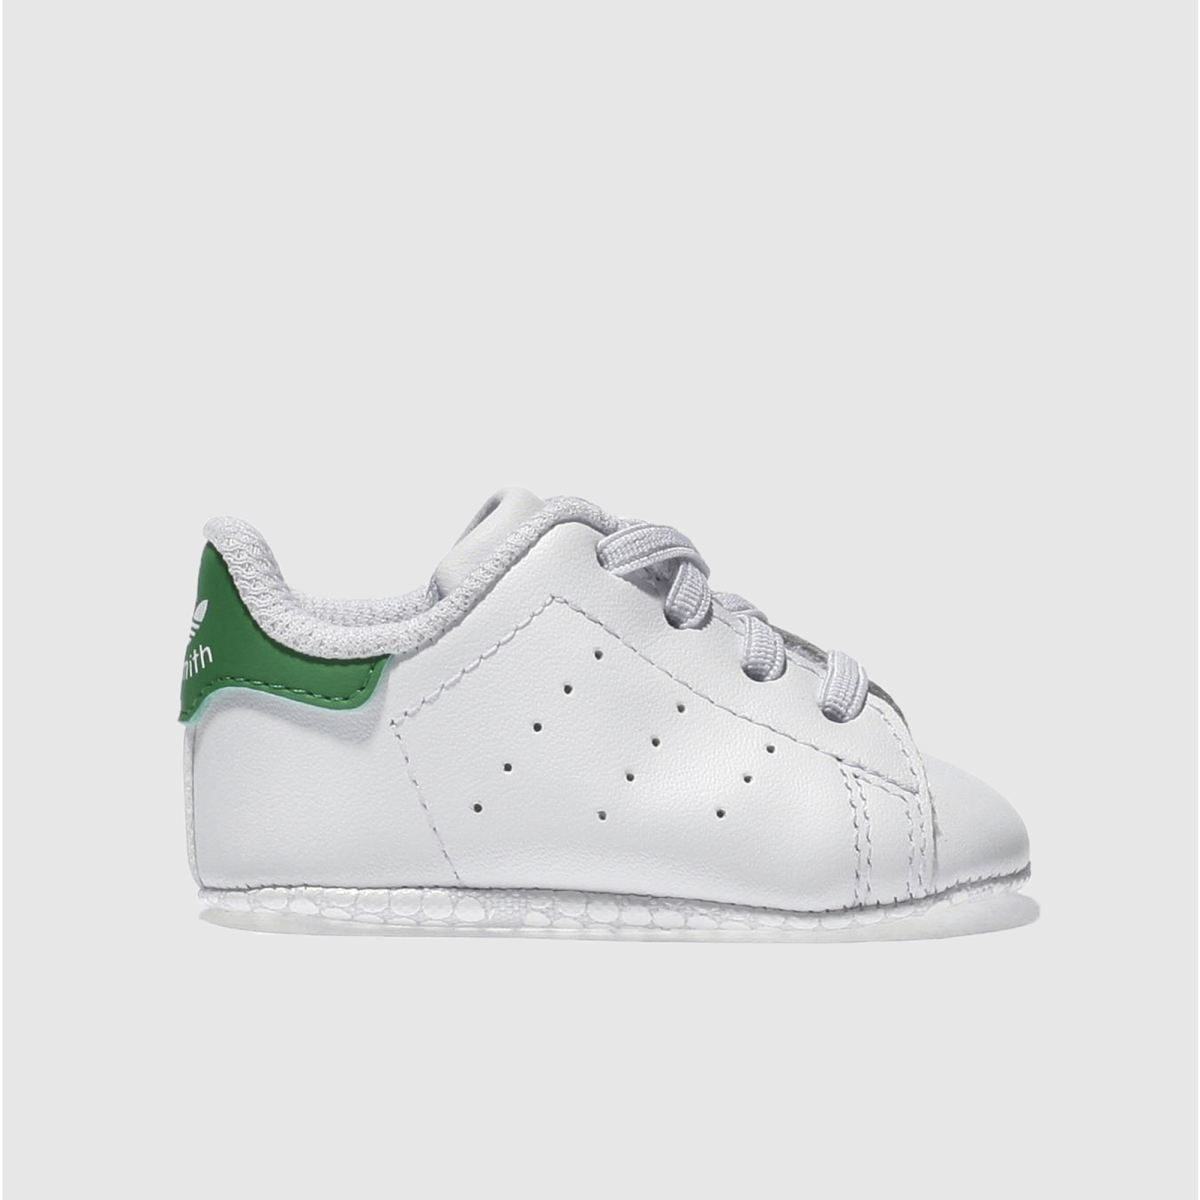 Stan Smith Adidas Mint Green